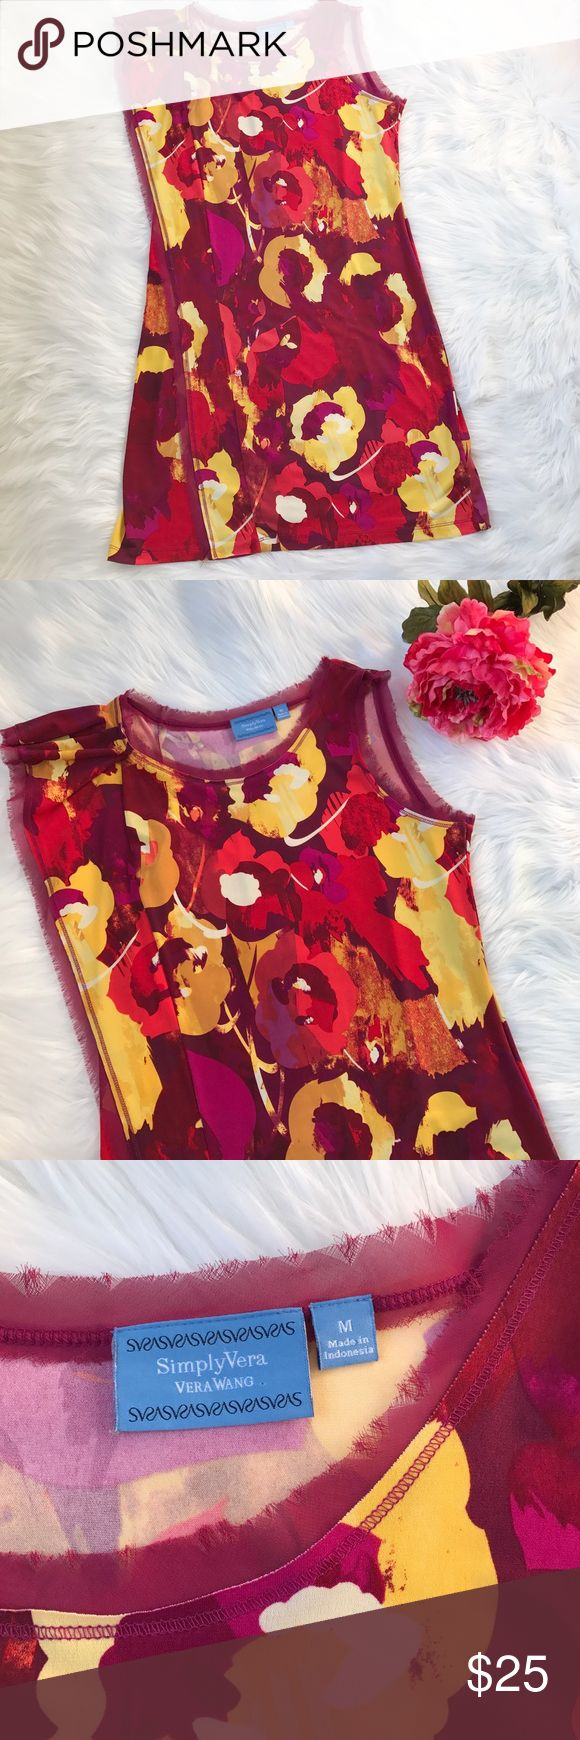 """Simply Vera Floral Dress Bright and beautiful floral dress by Vera Wang. Lightweight, stretchy, and very comfortable!! Dress measures approximately 46"""" in length and is in perfect like-new condition Simply Vera Vera Wang Dresses Midi"""